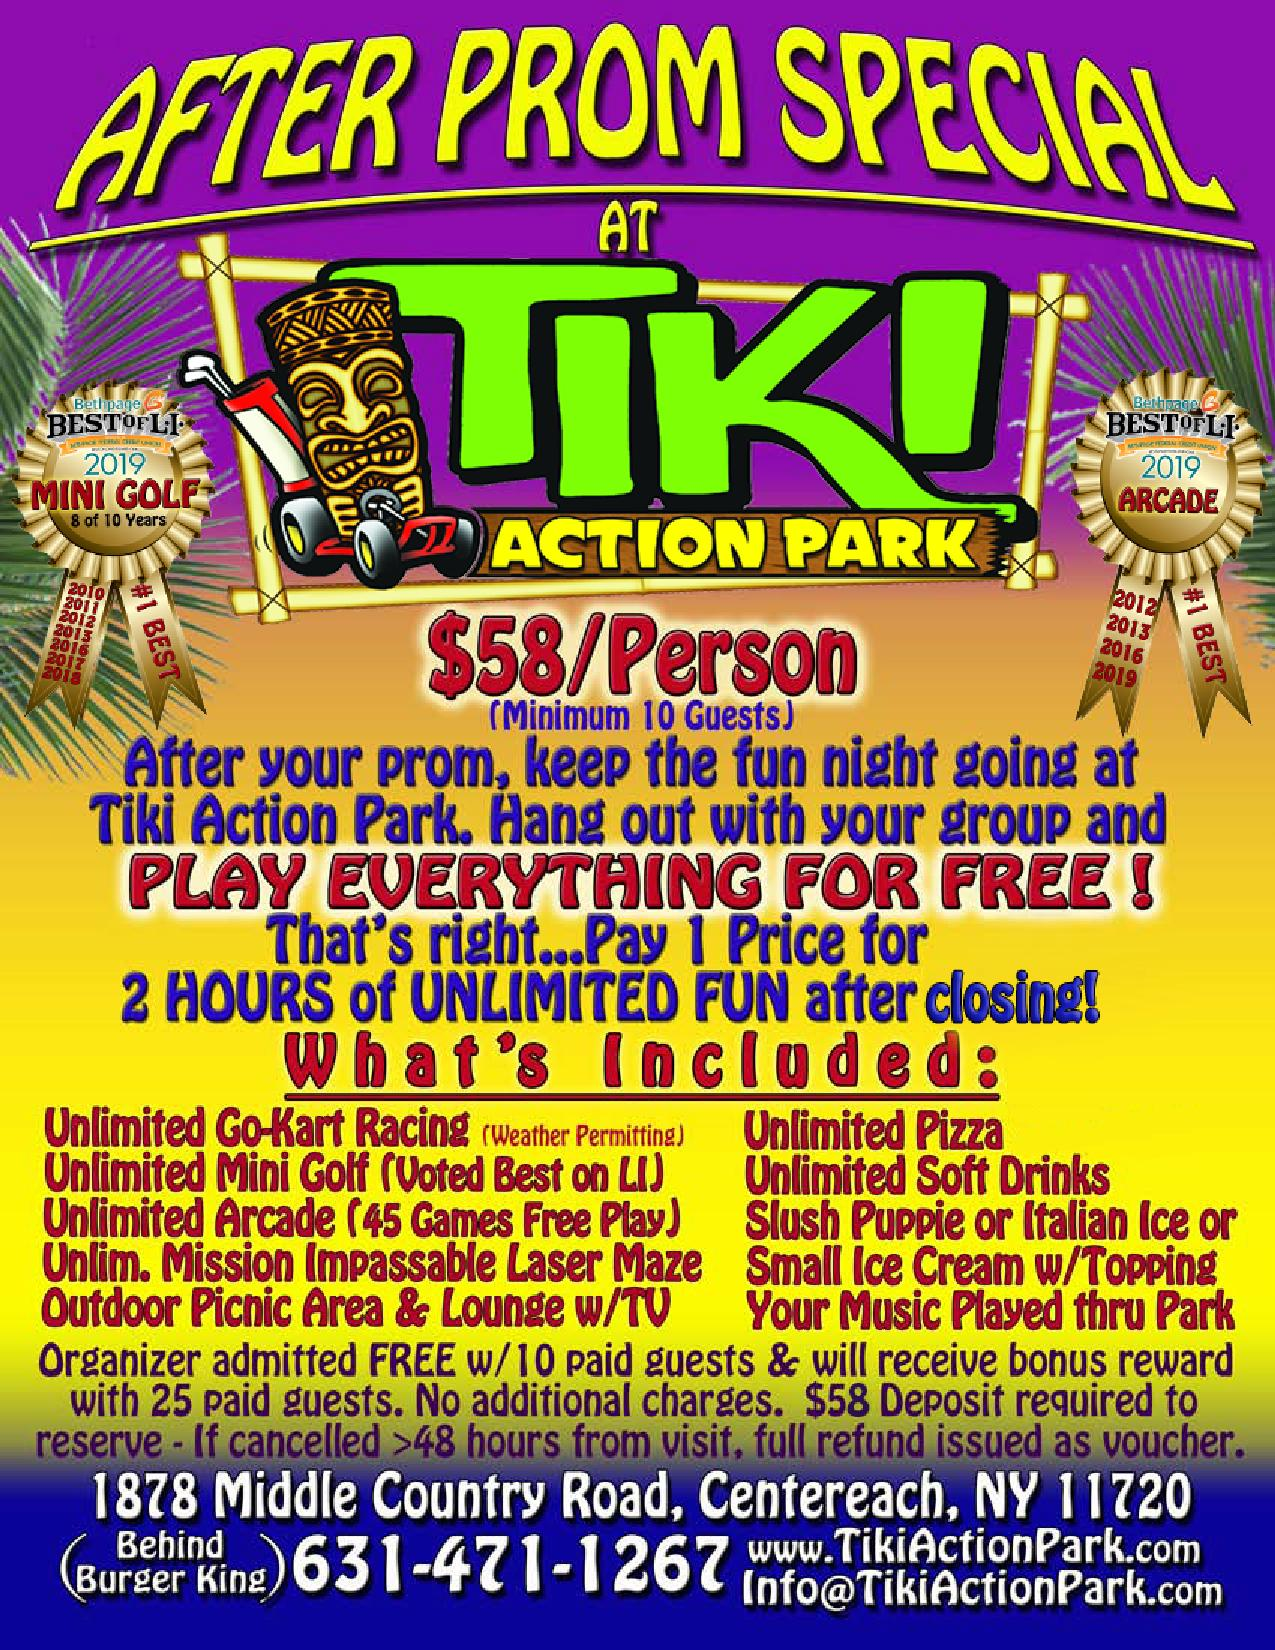 tiki-action-park-after-prom-party-flyer